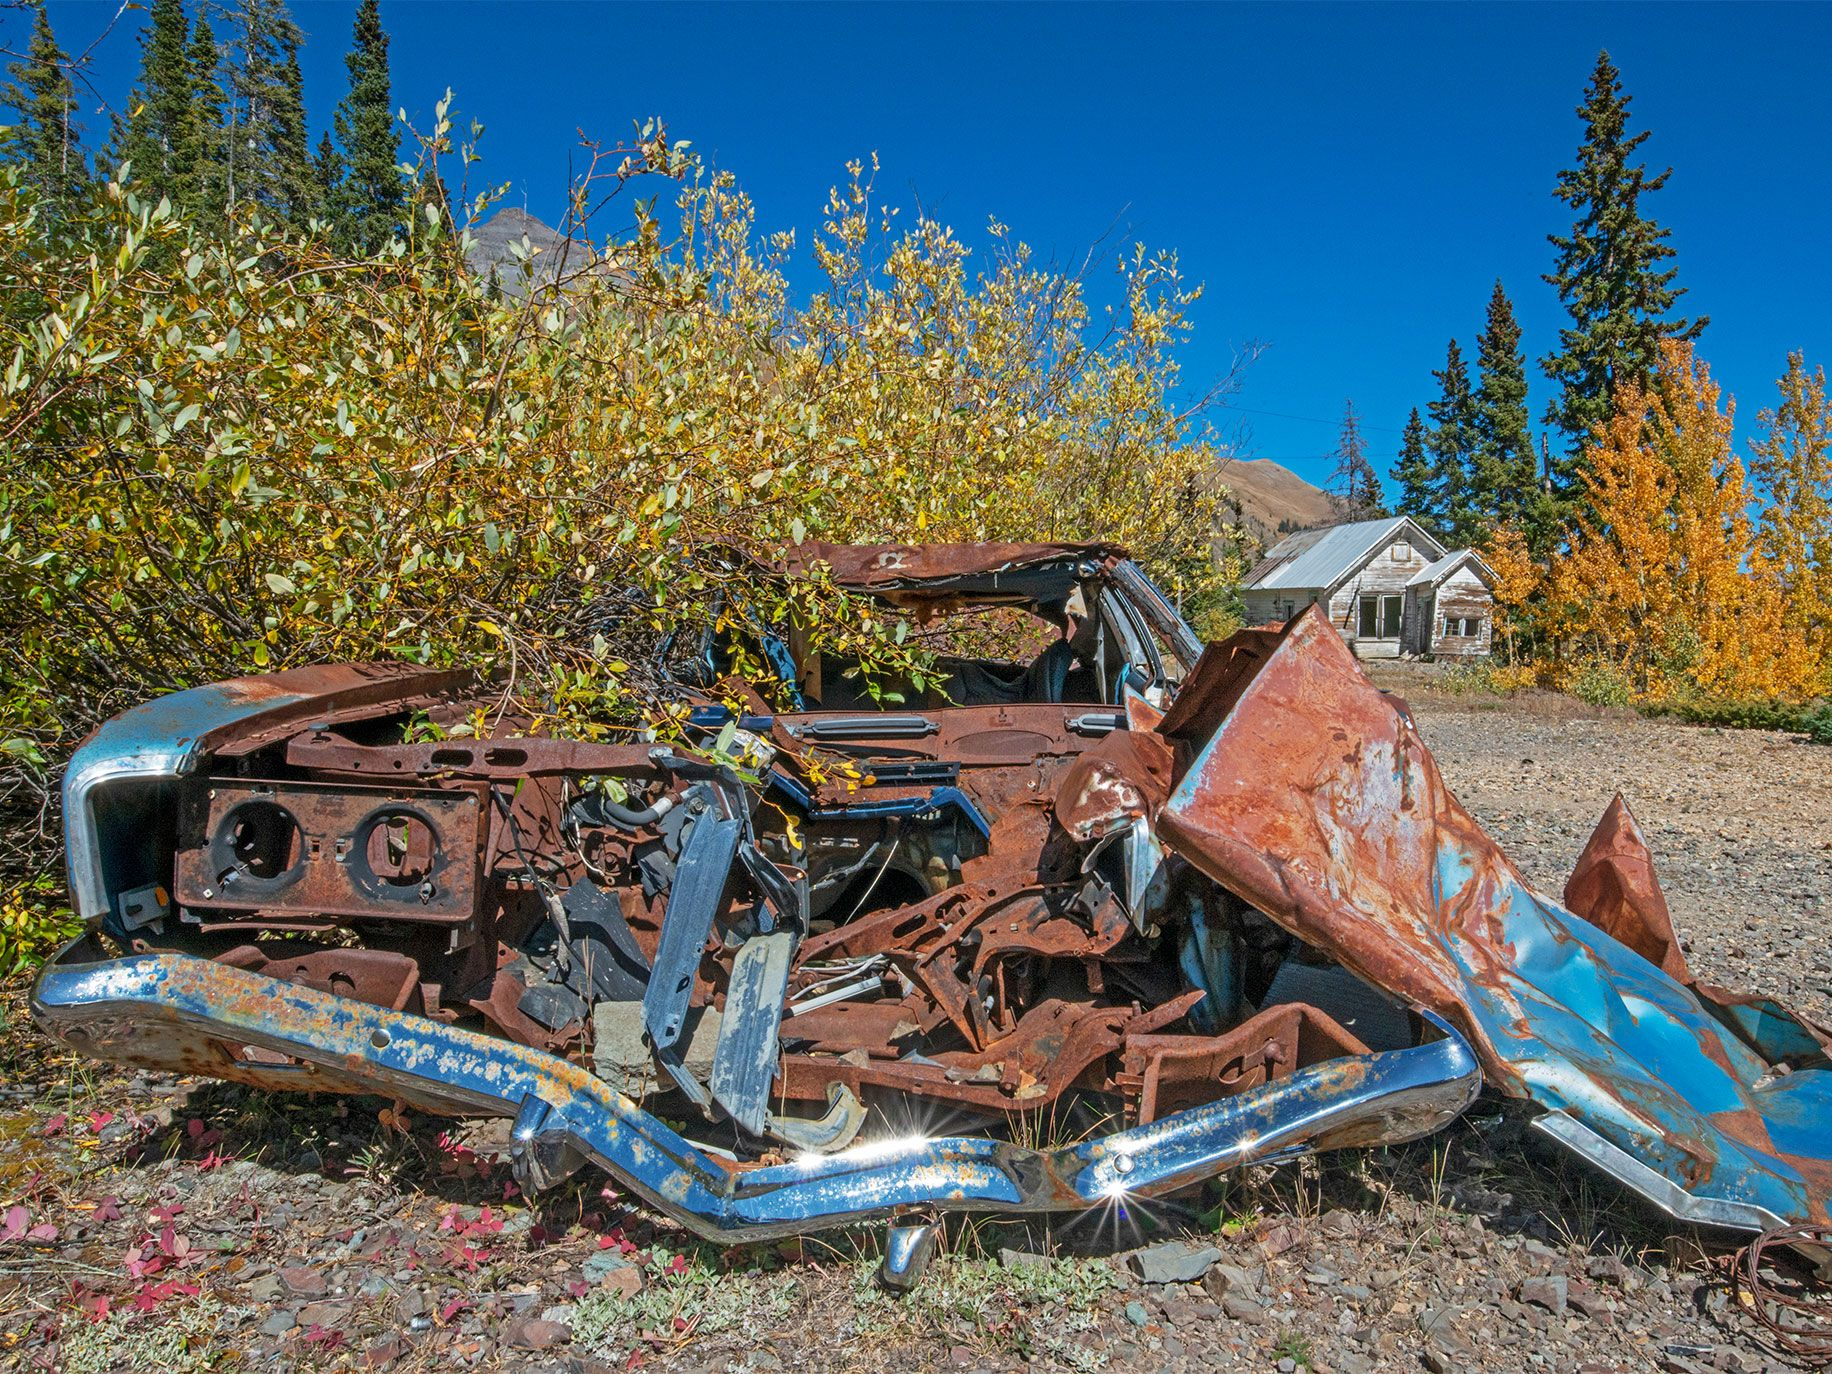 Vegetation sprouts through a vehicle abandoned at the defunct Idarado Mine.